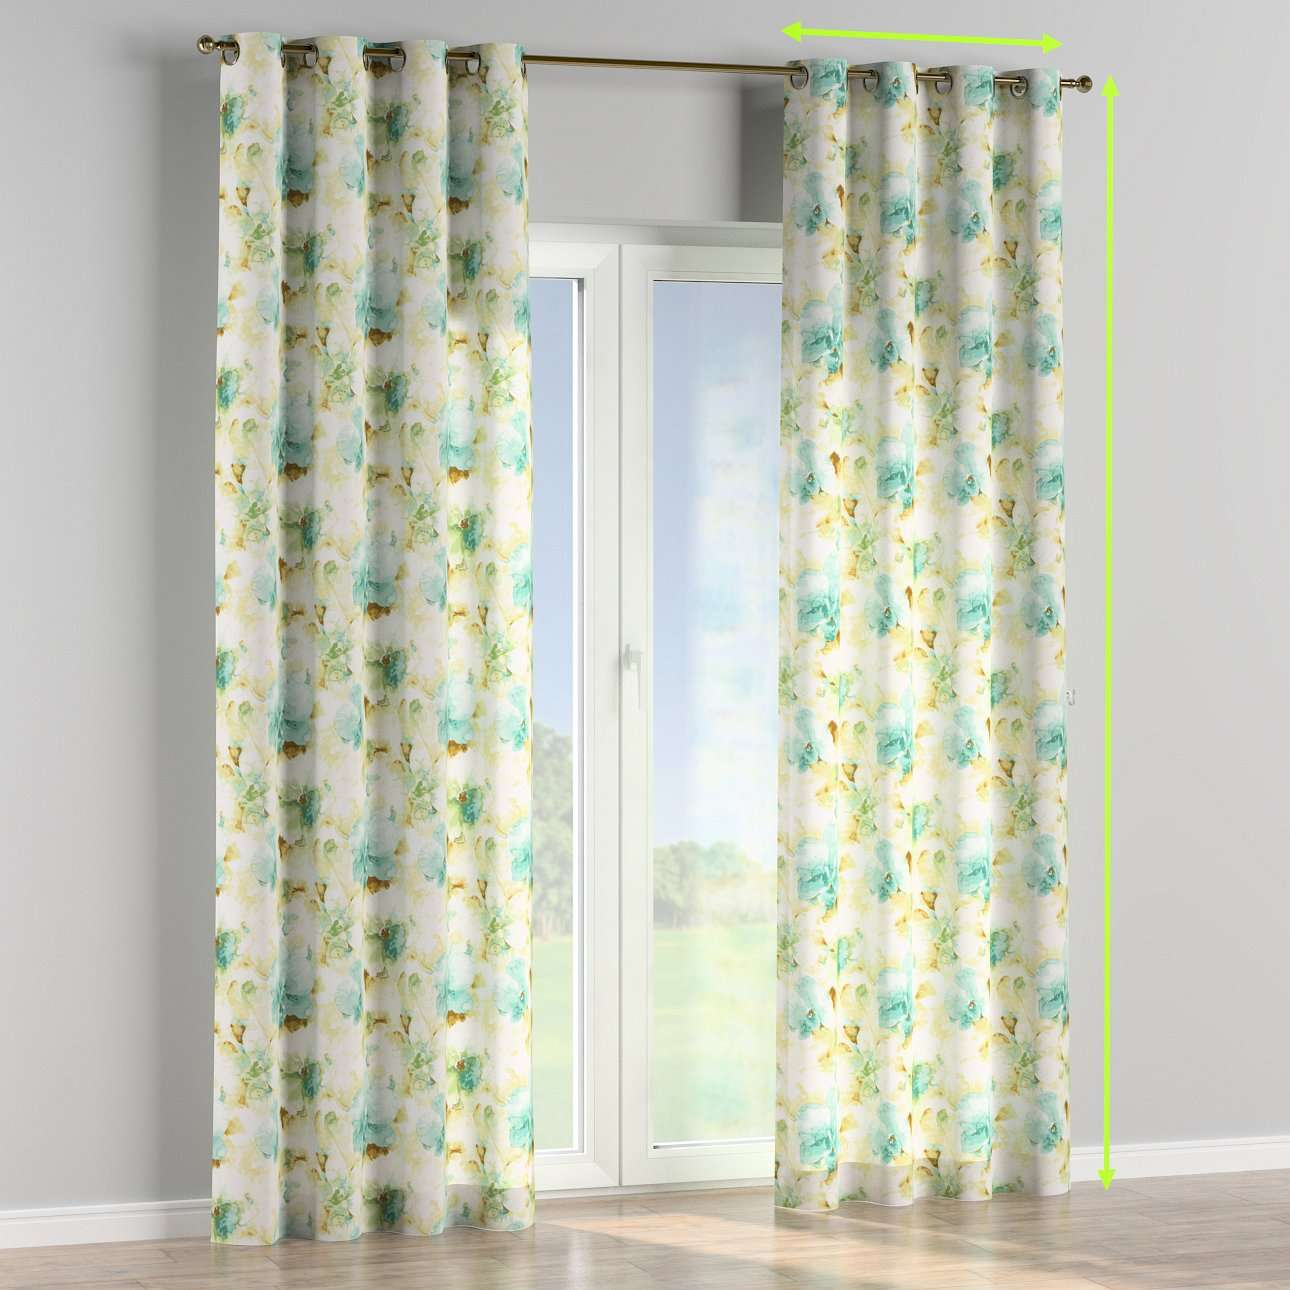 Eyelet lined curtains in collection Acapulco, fabric: 141-35